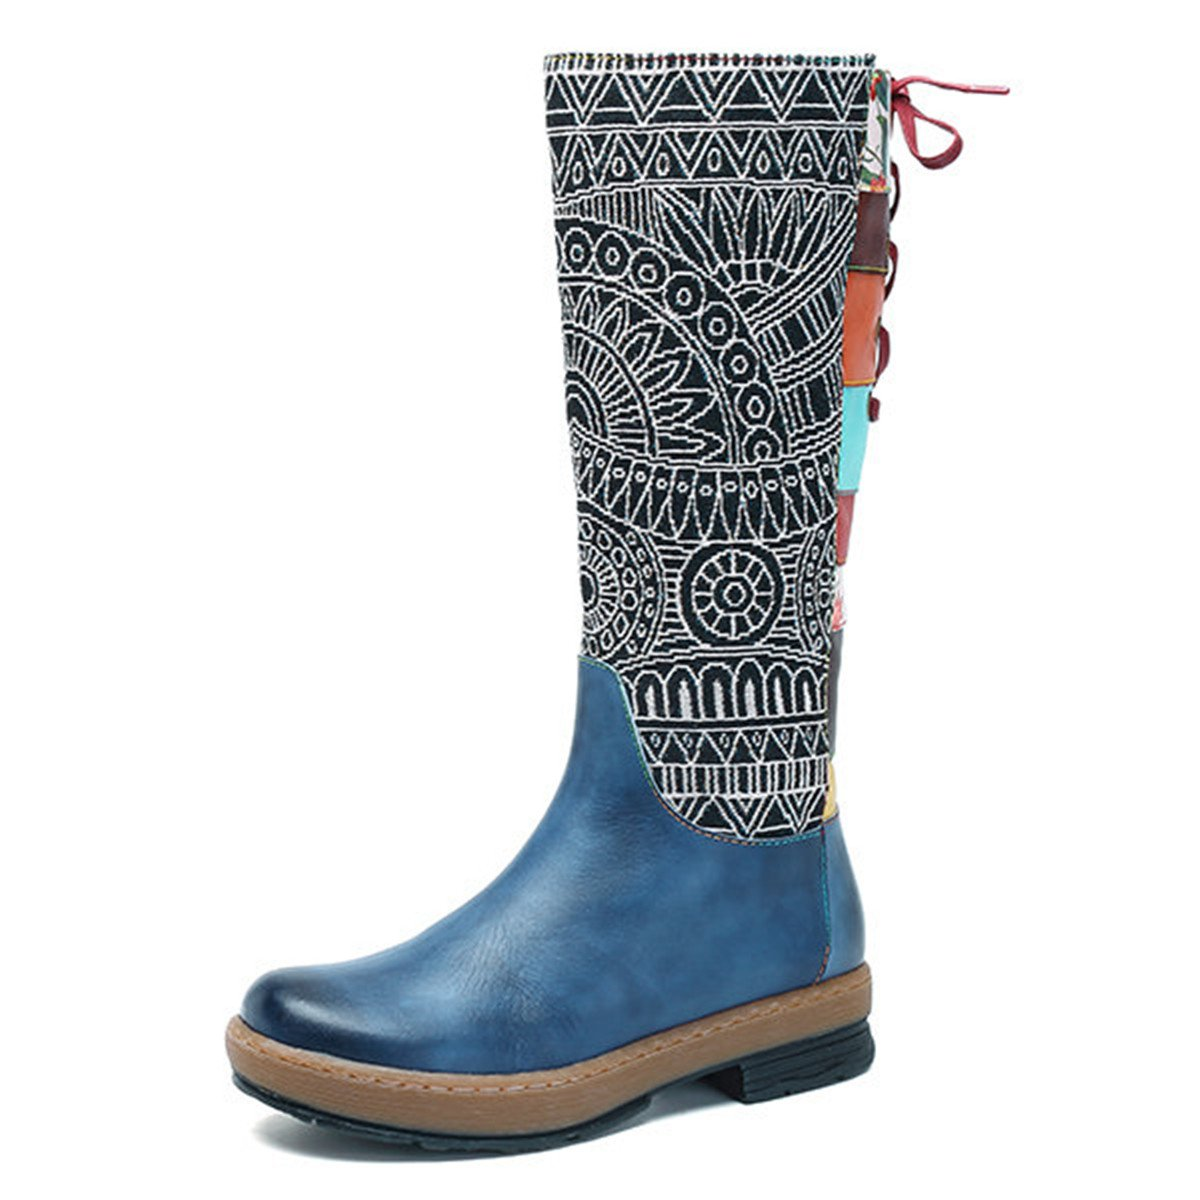 ae7786b929644 Amazon.com | socofy Leather Knee Boots, Women's Bohemian Splicing Pattern  Flat Knee High Boots | Knee-High